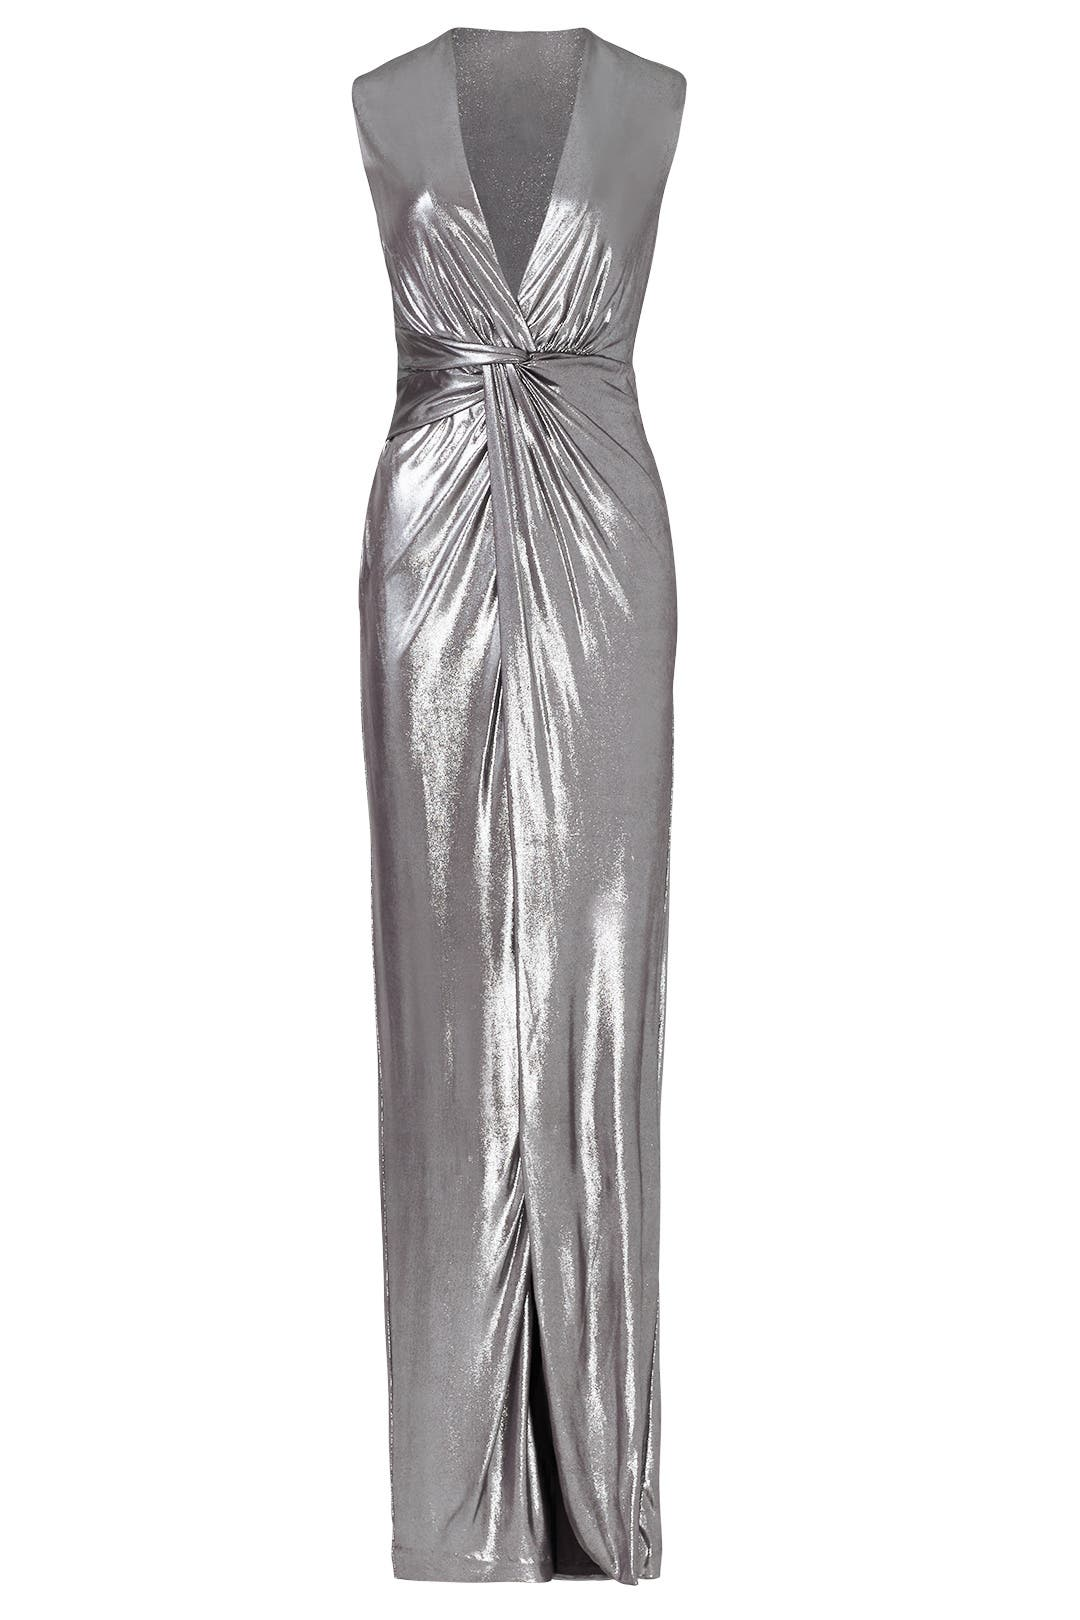 Silver Twist Column Gown by Halston Heritage for $70 - $80 | Rent ...